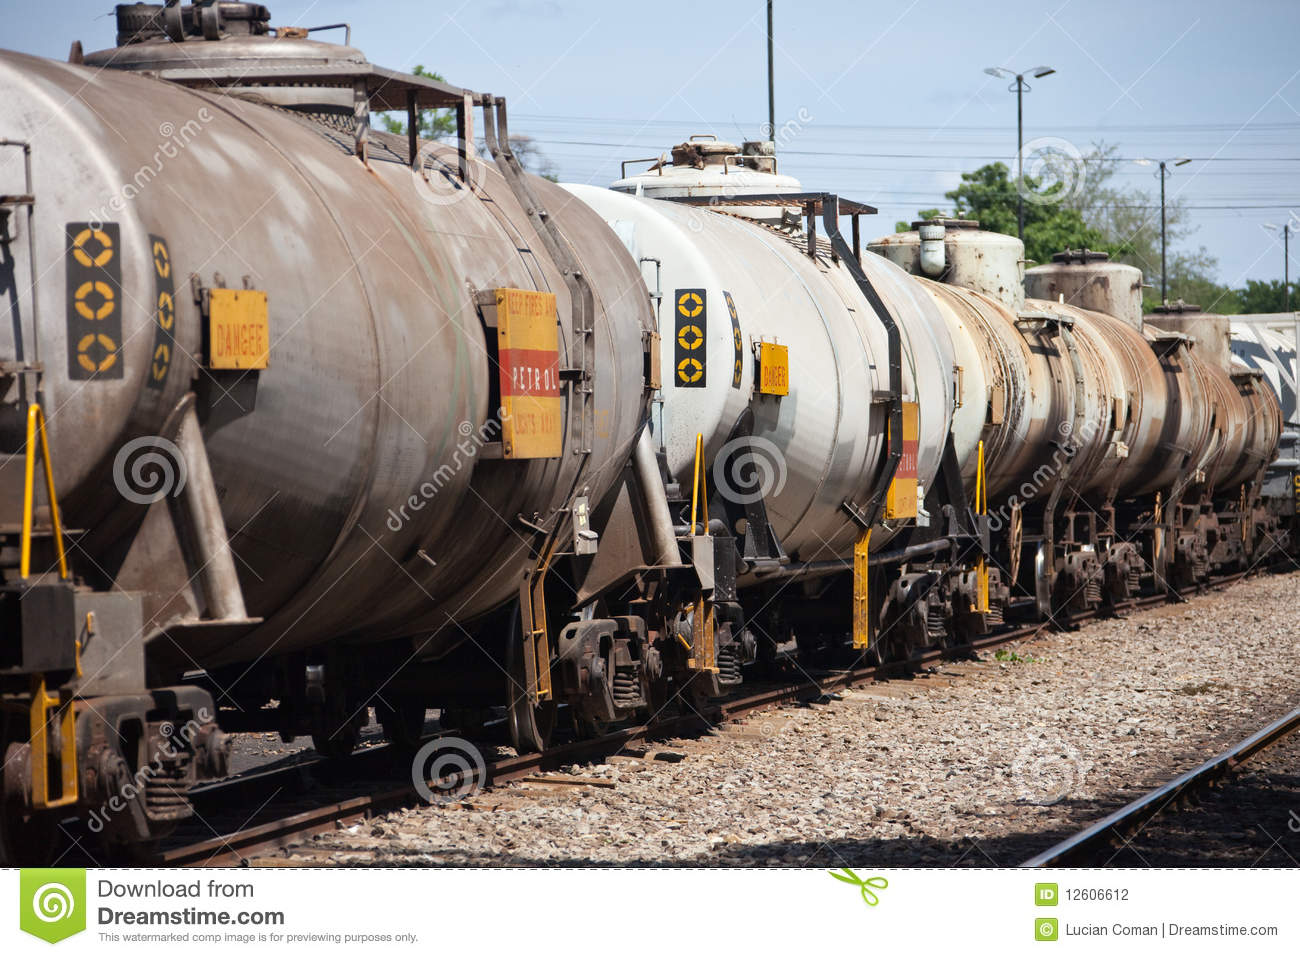 what kind of fuel do trains use